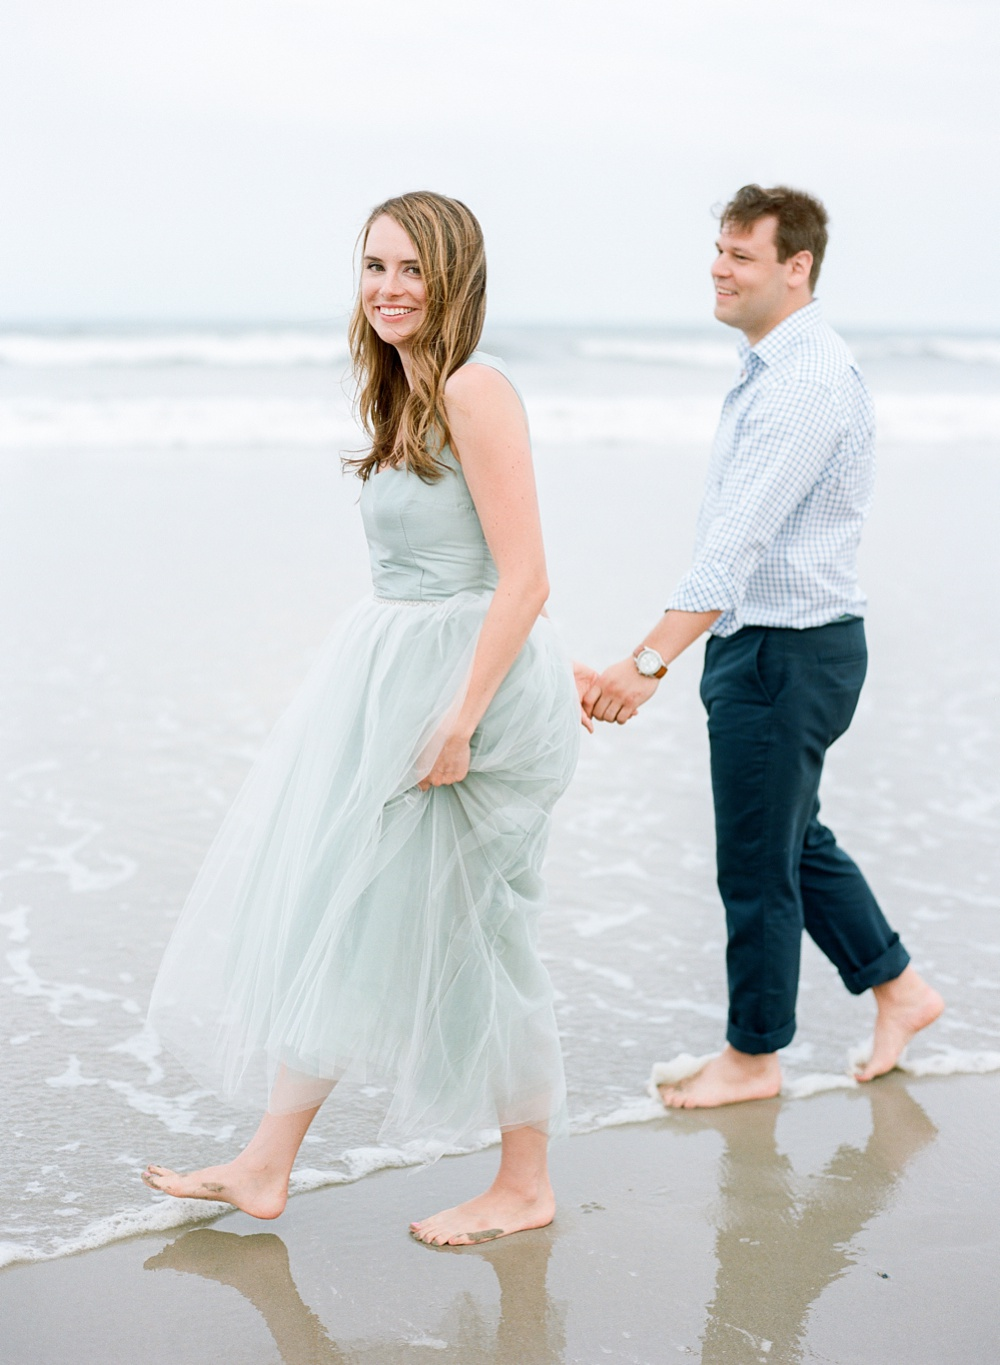 OBX Wedding Photographer Film Faith Teasley-01